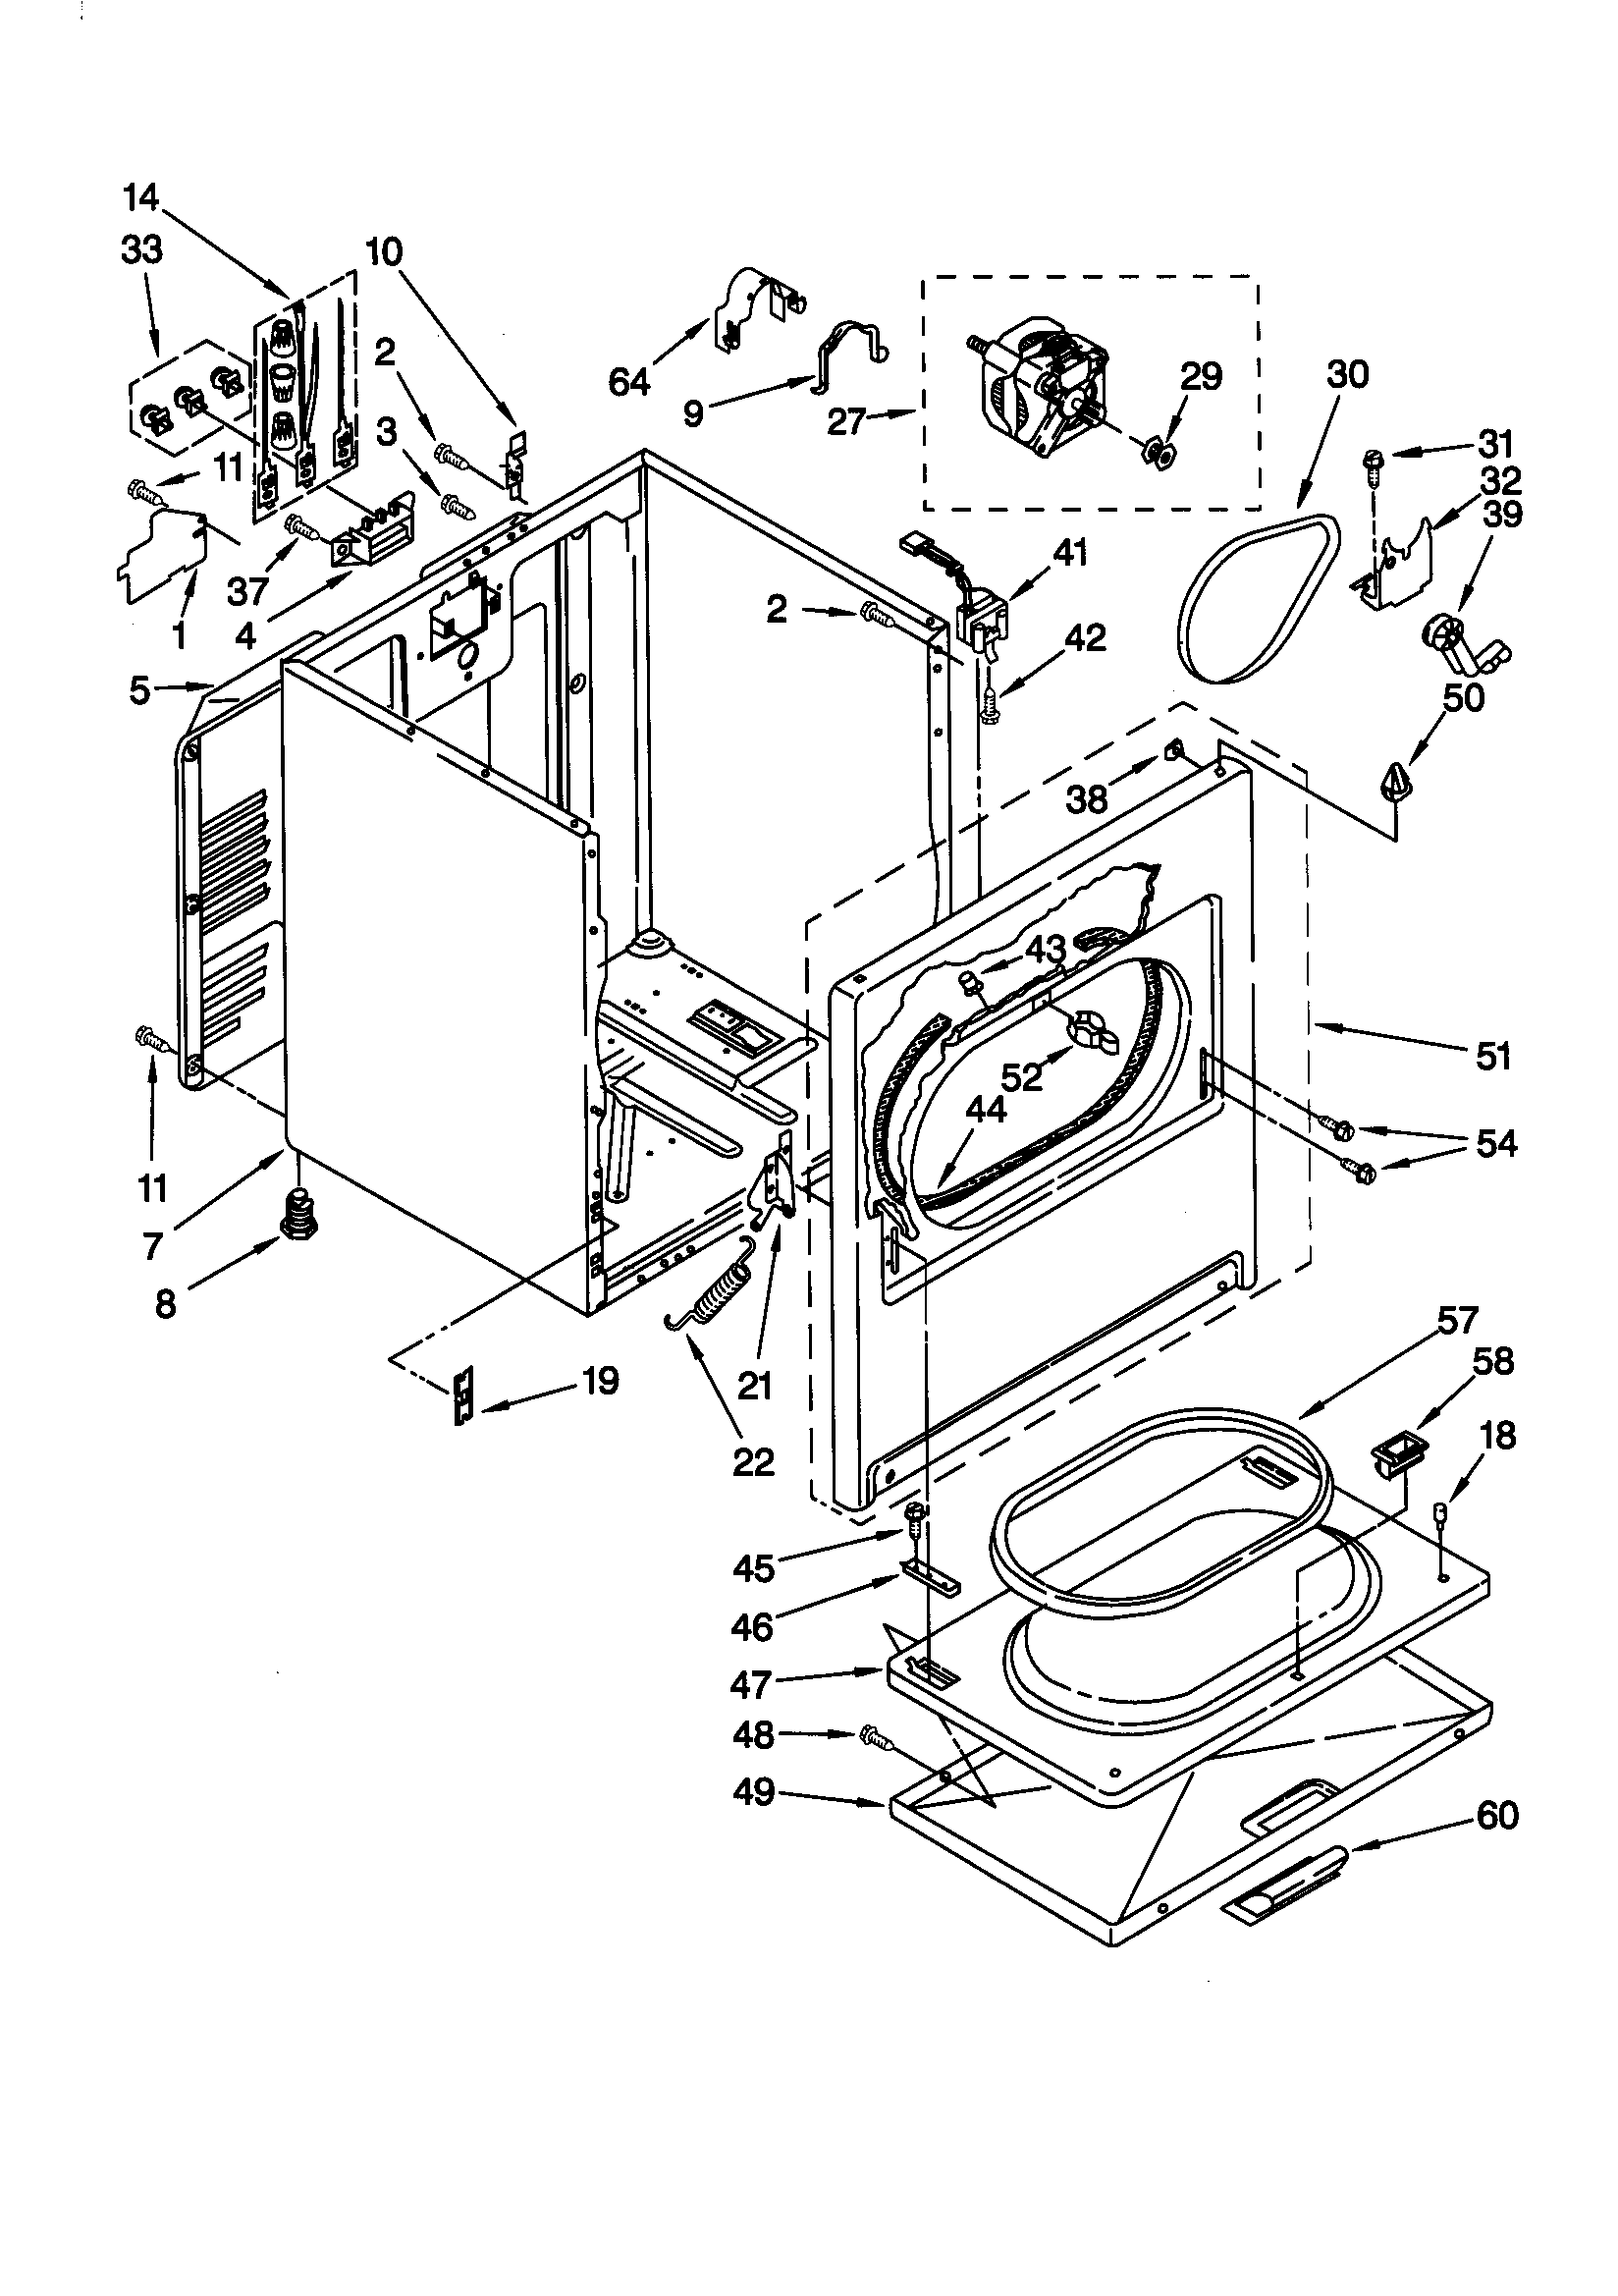 CABINET Diagram & Parts List for Model 11060622990 Kenmore